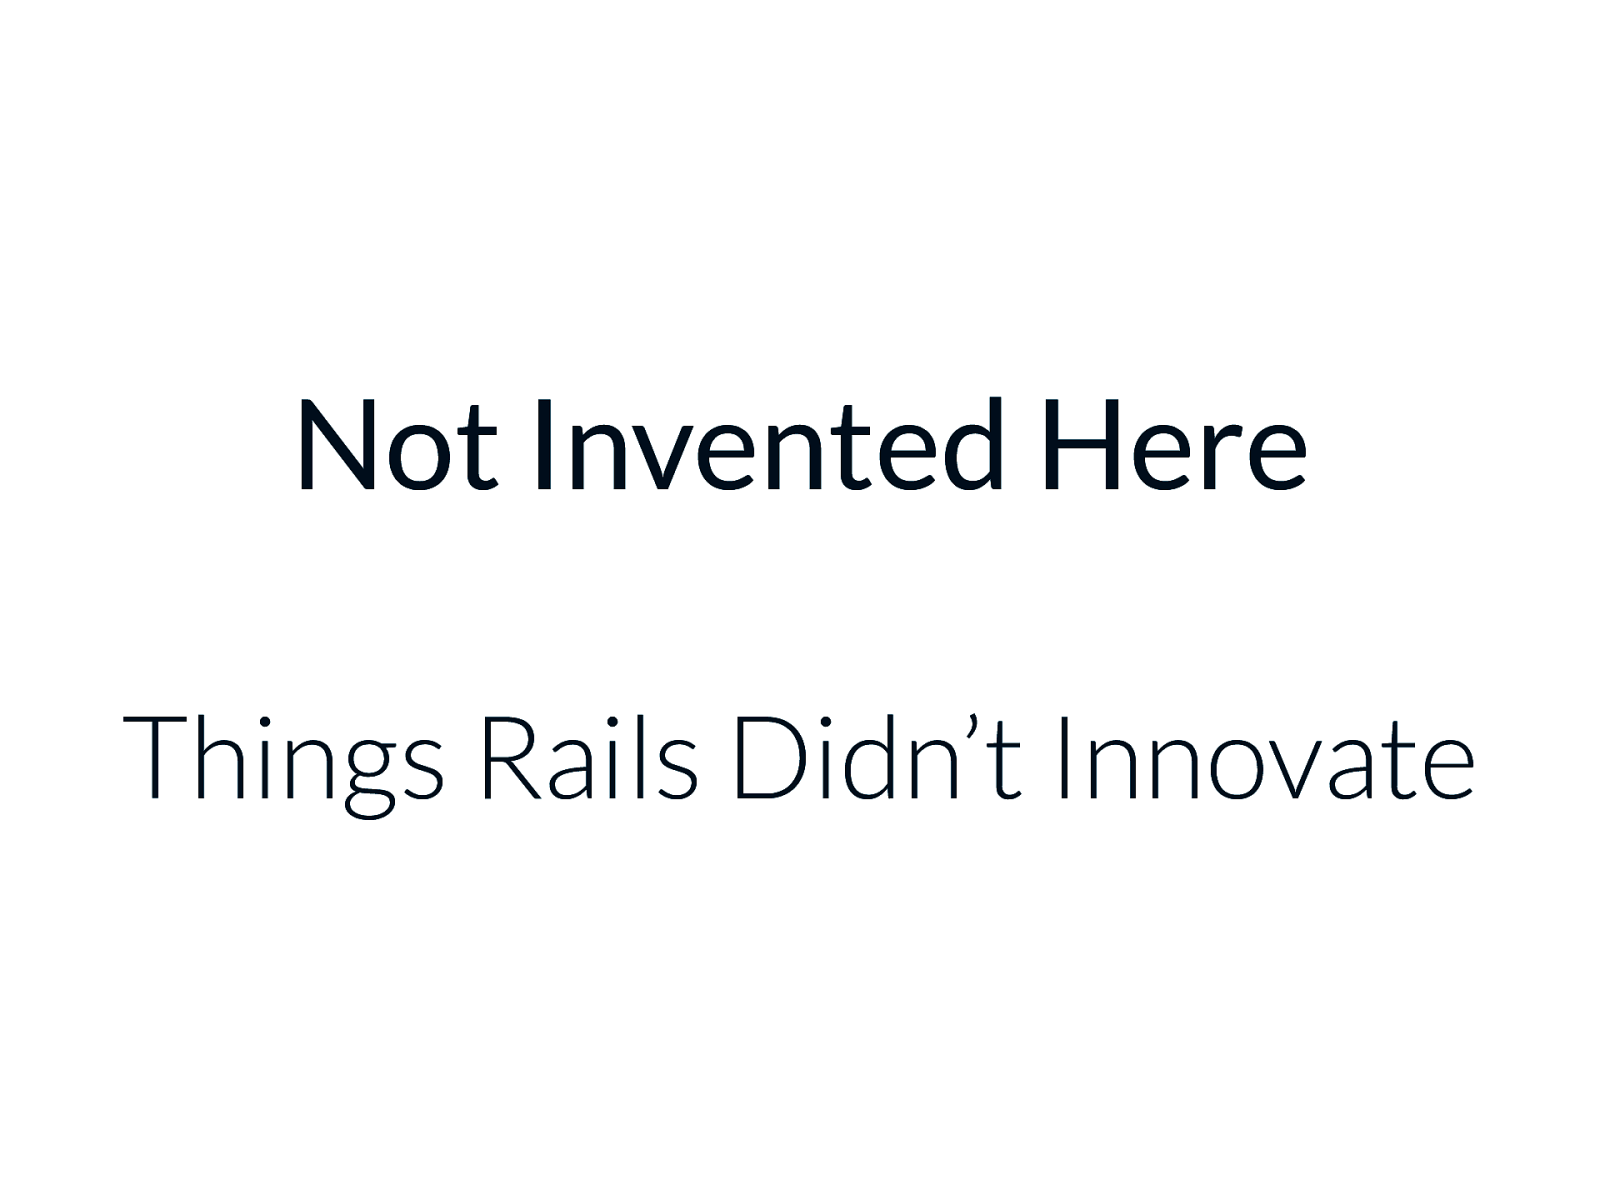 Not Invented Here: Things Rails Didn't Innovate